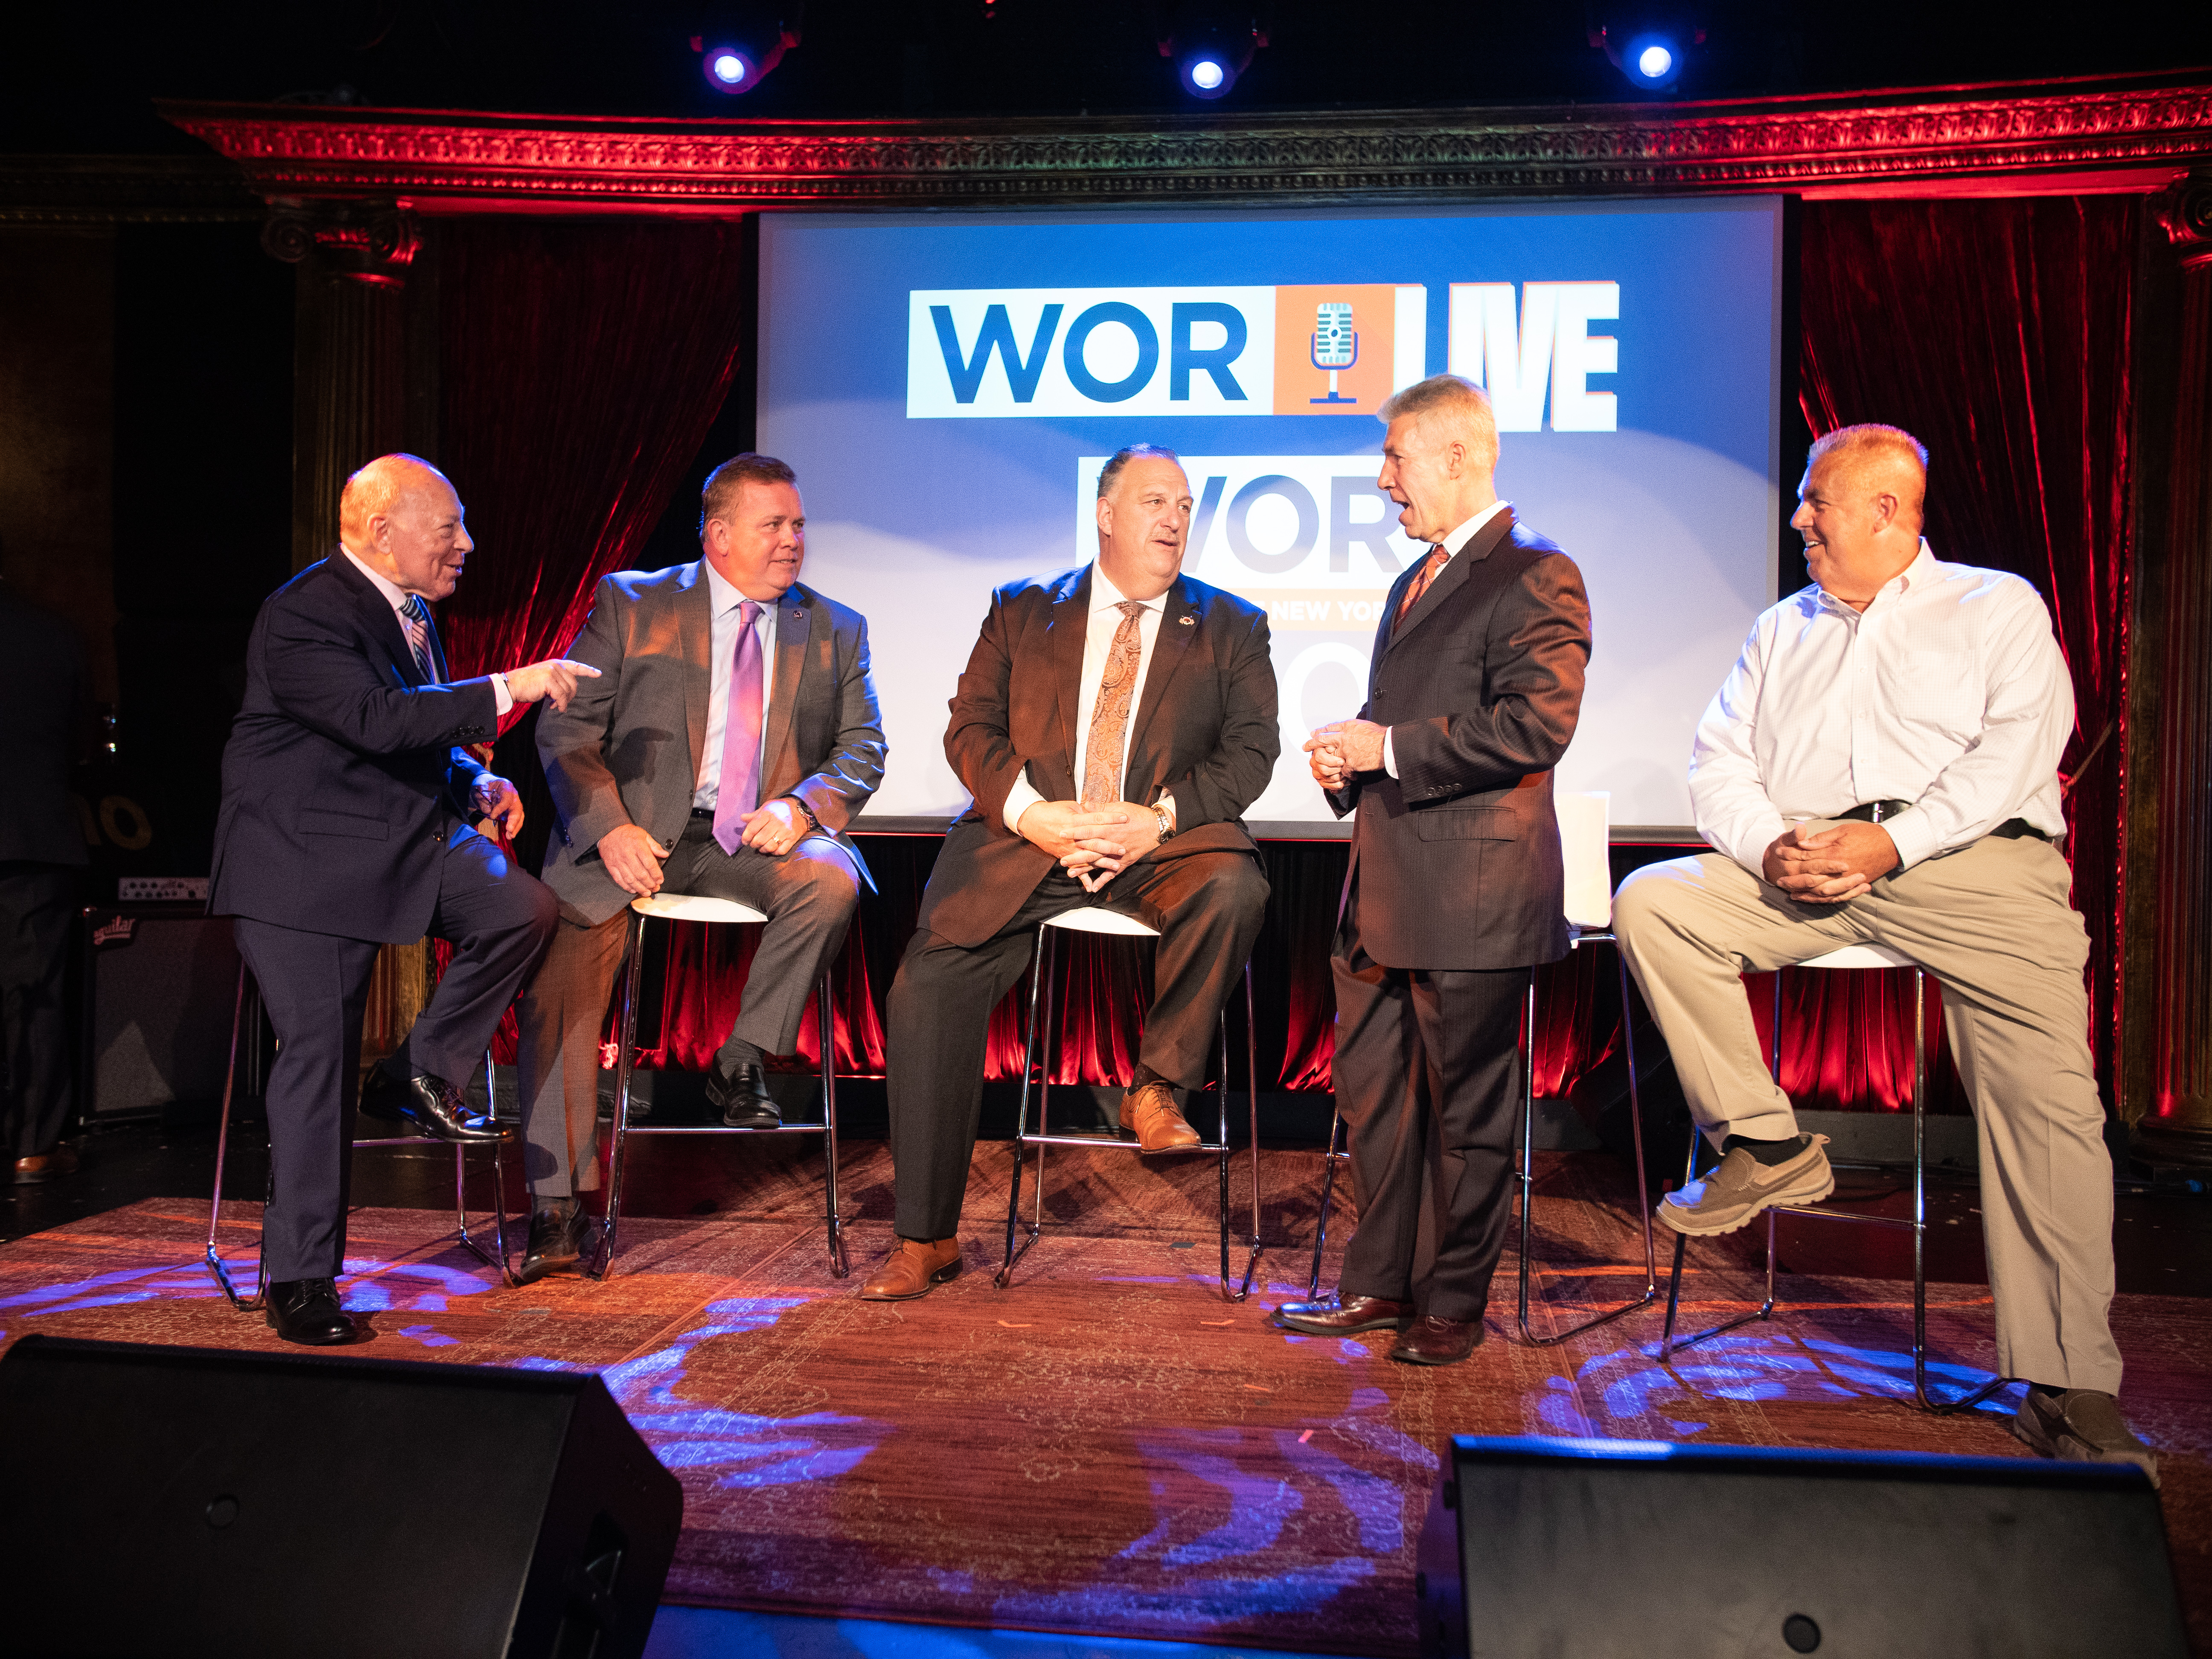 LaborPress Teams Up With WOR Live for Post 9/11 Construction Panel